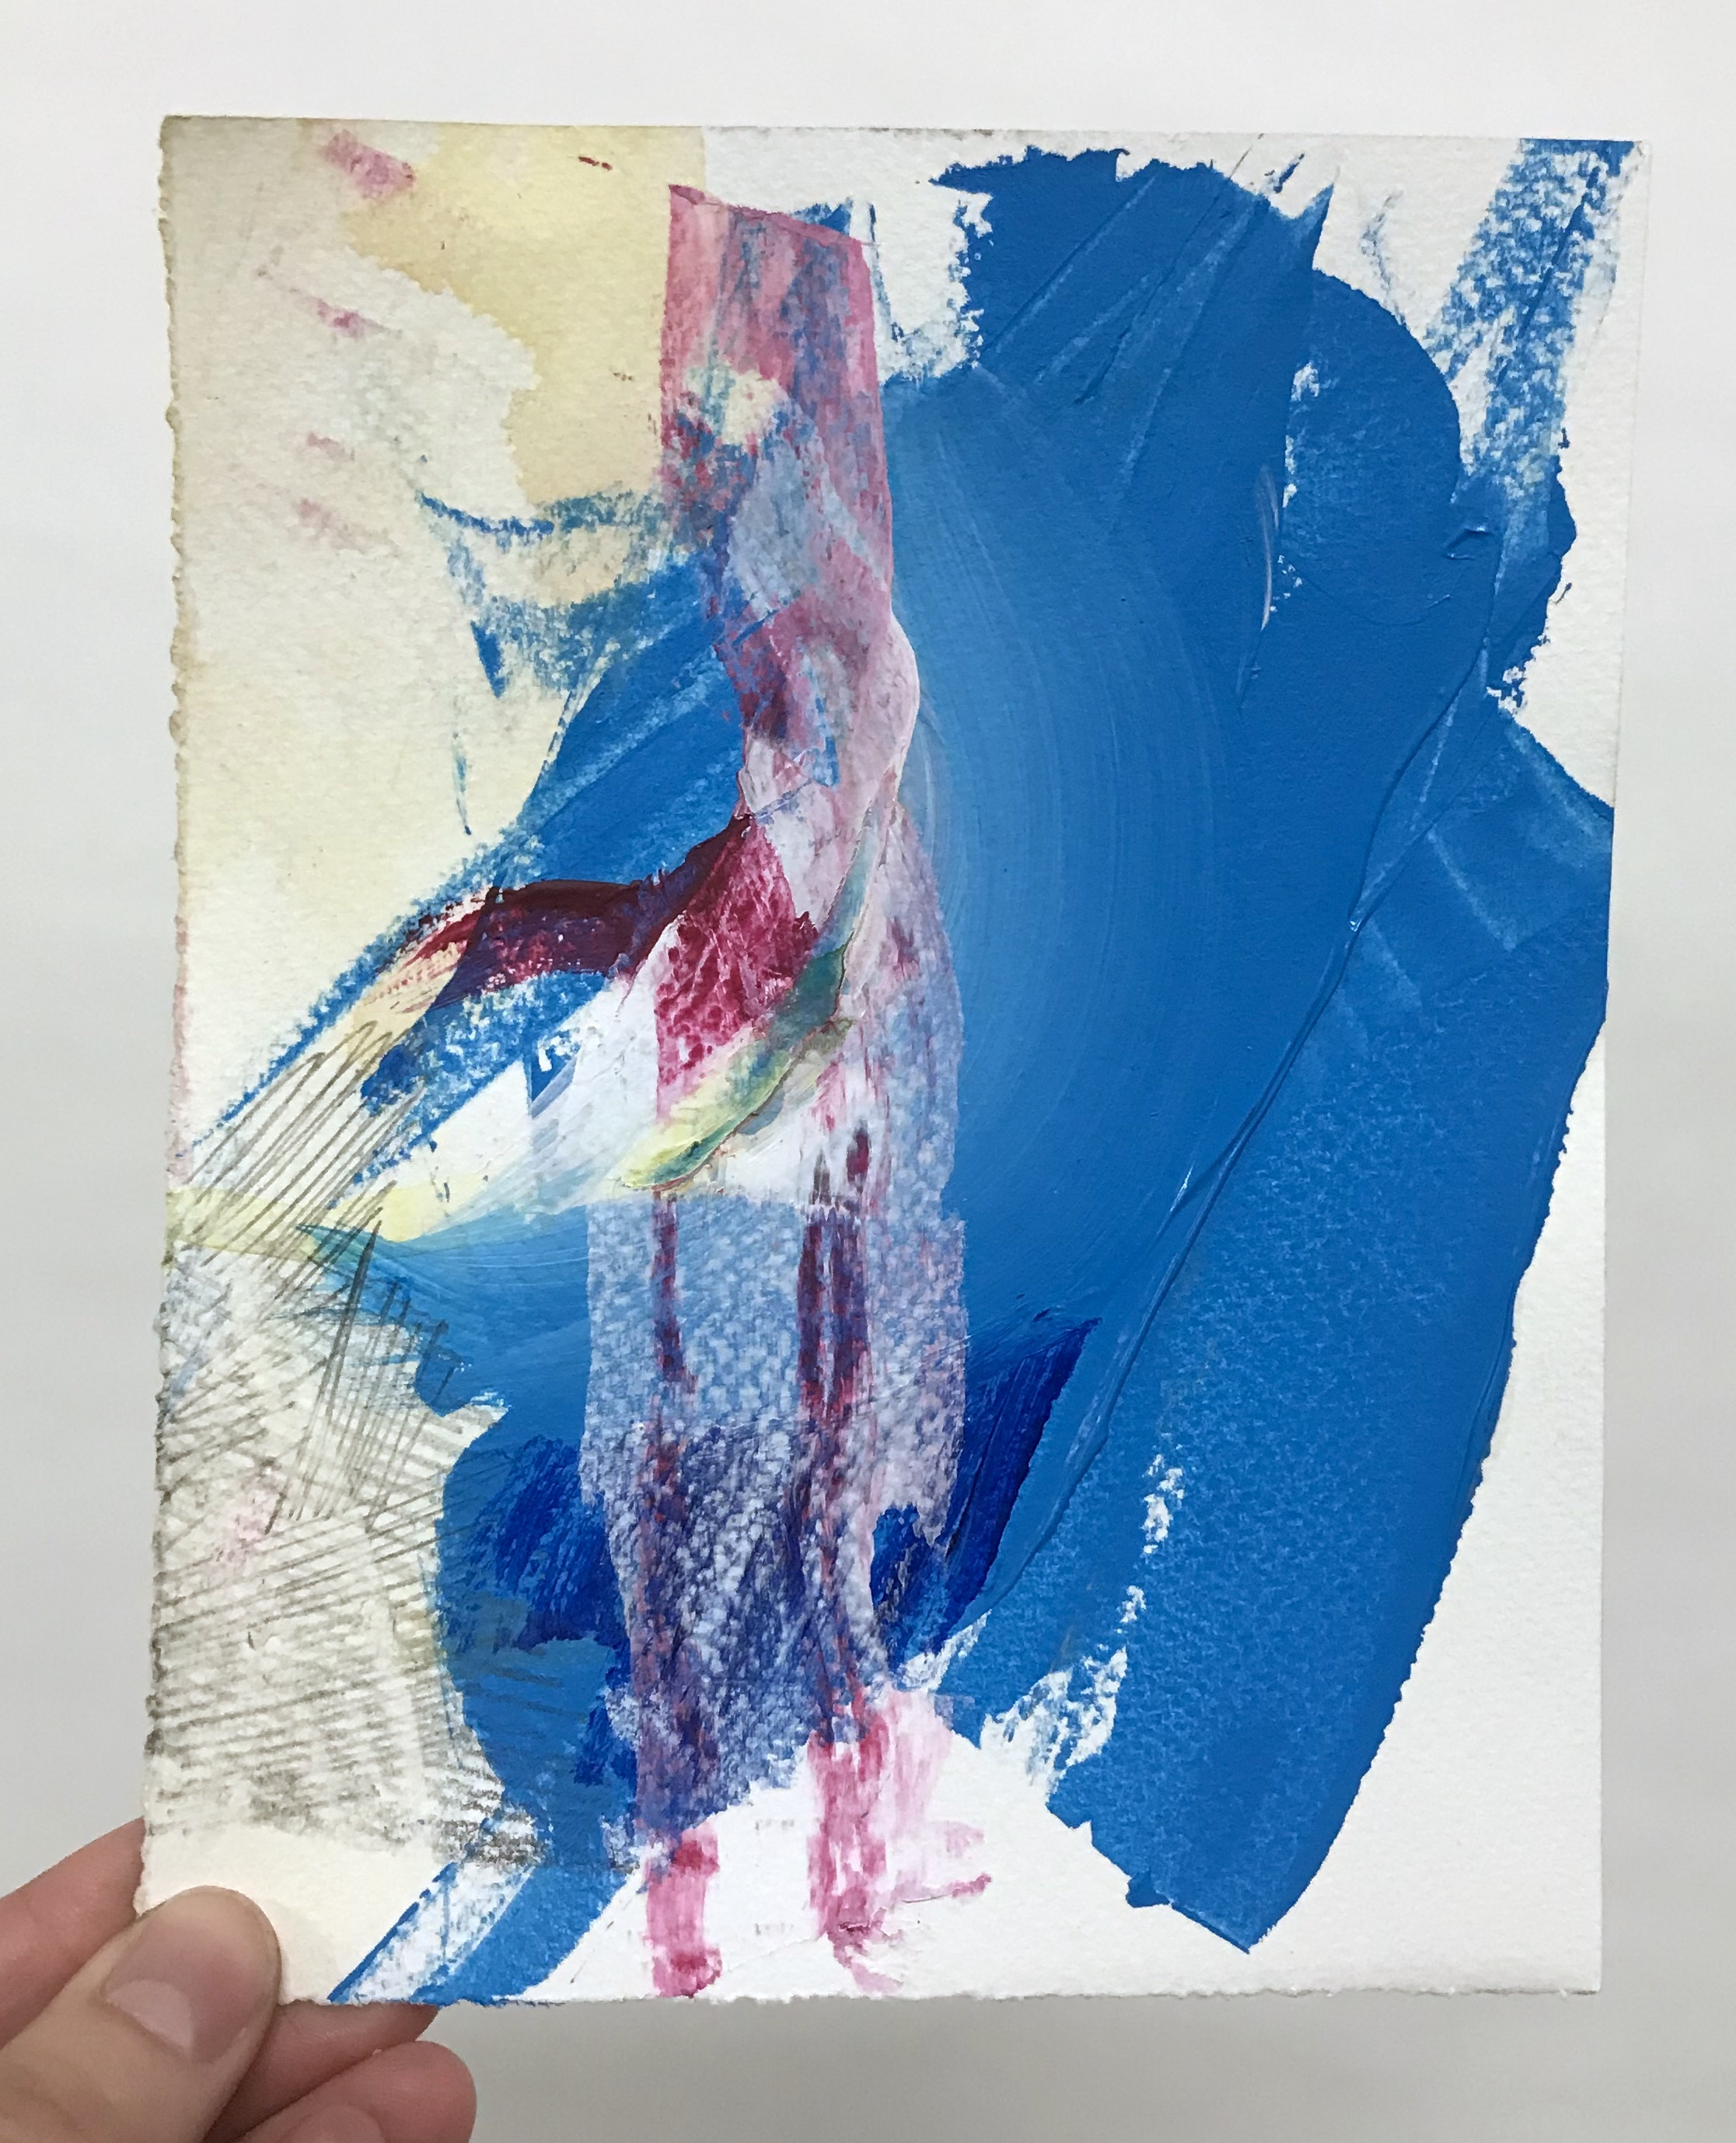 """Lure #13, 5.5""""x7"""", acrylic + graphite on paper, 2017, SOLD"""